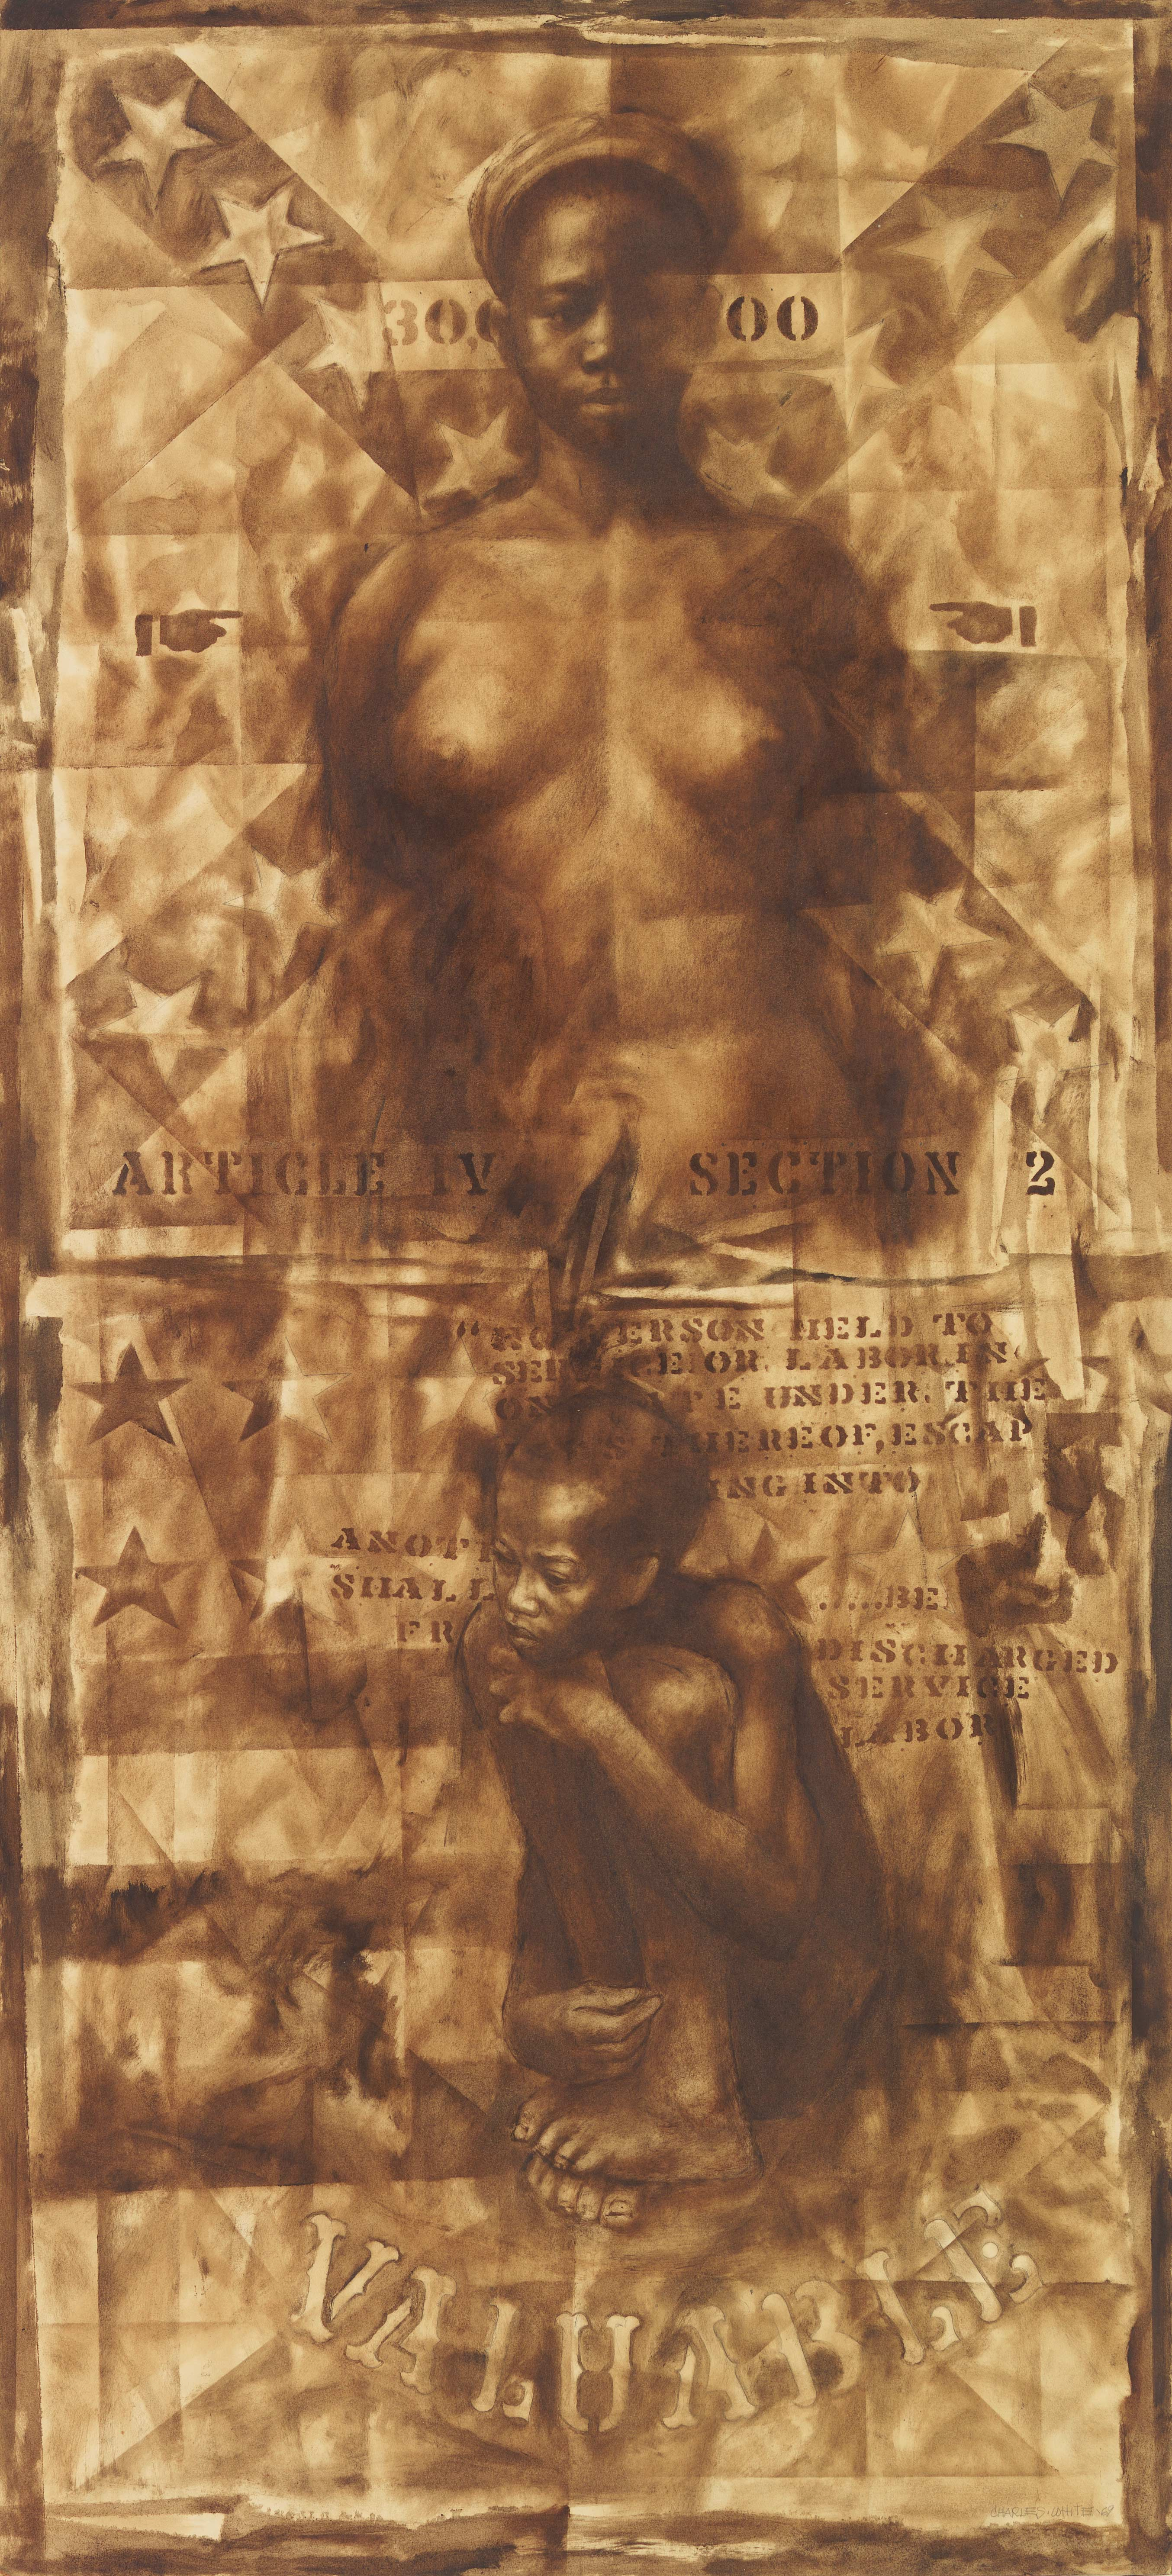 Wanted Poster #6, by Charles White, 1969